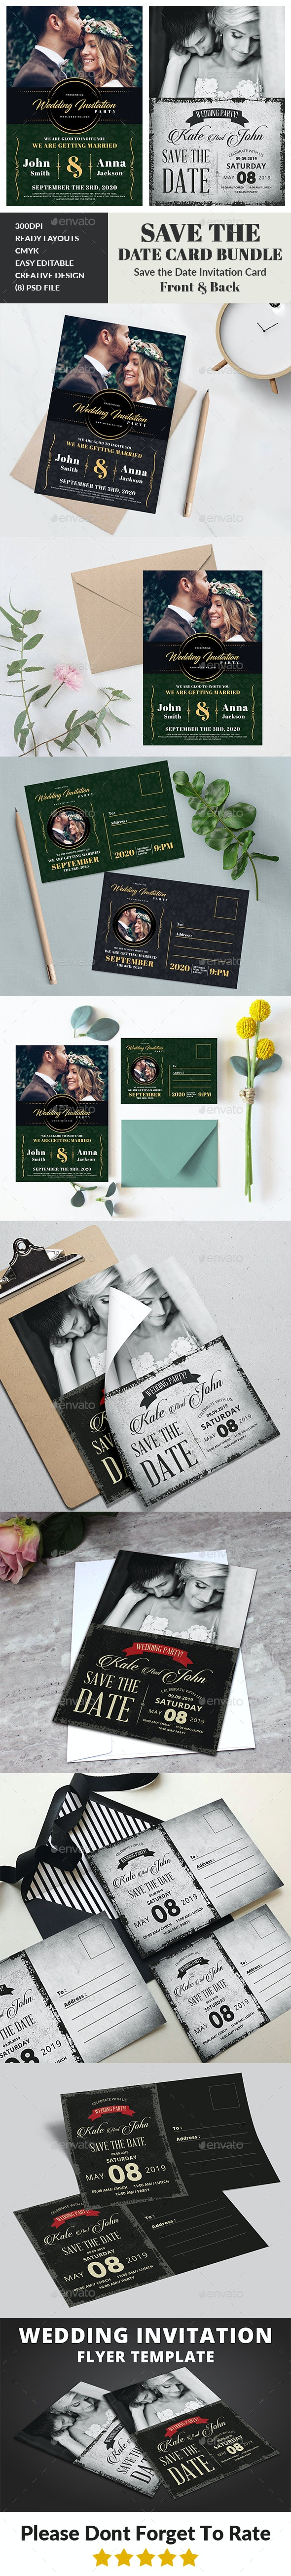 Wedding Invitation Card Bundle - Weddings Cards & Invites